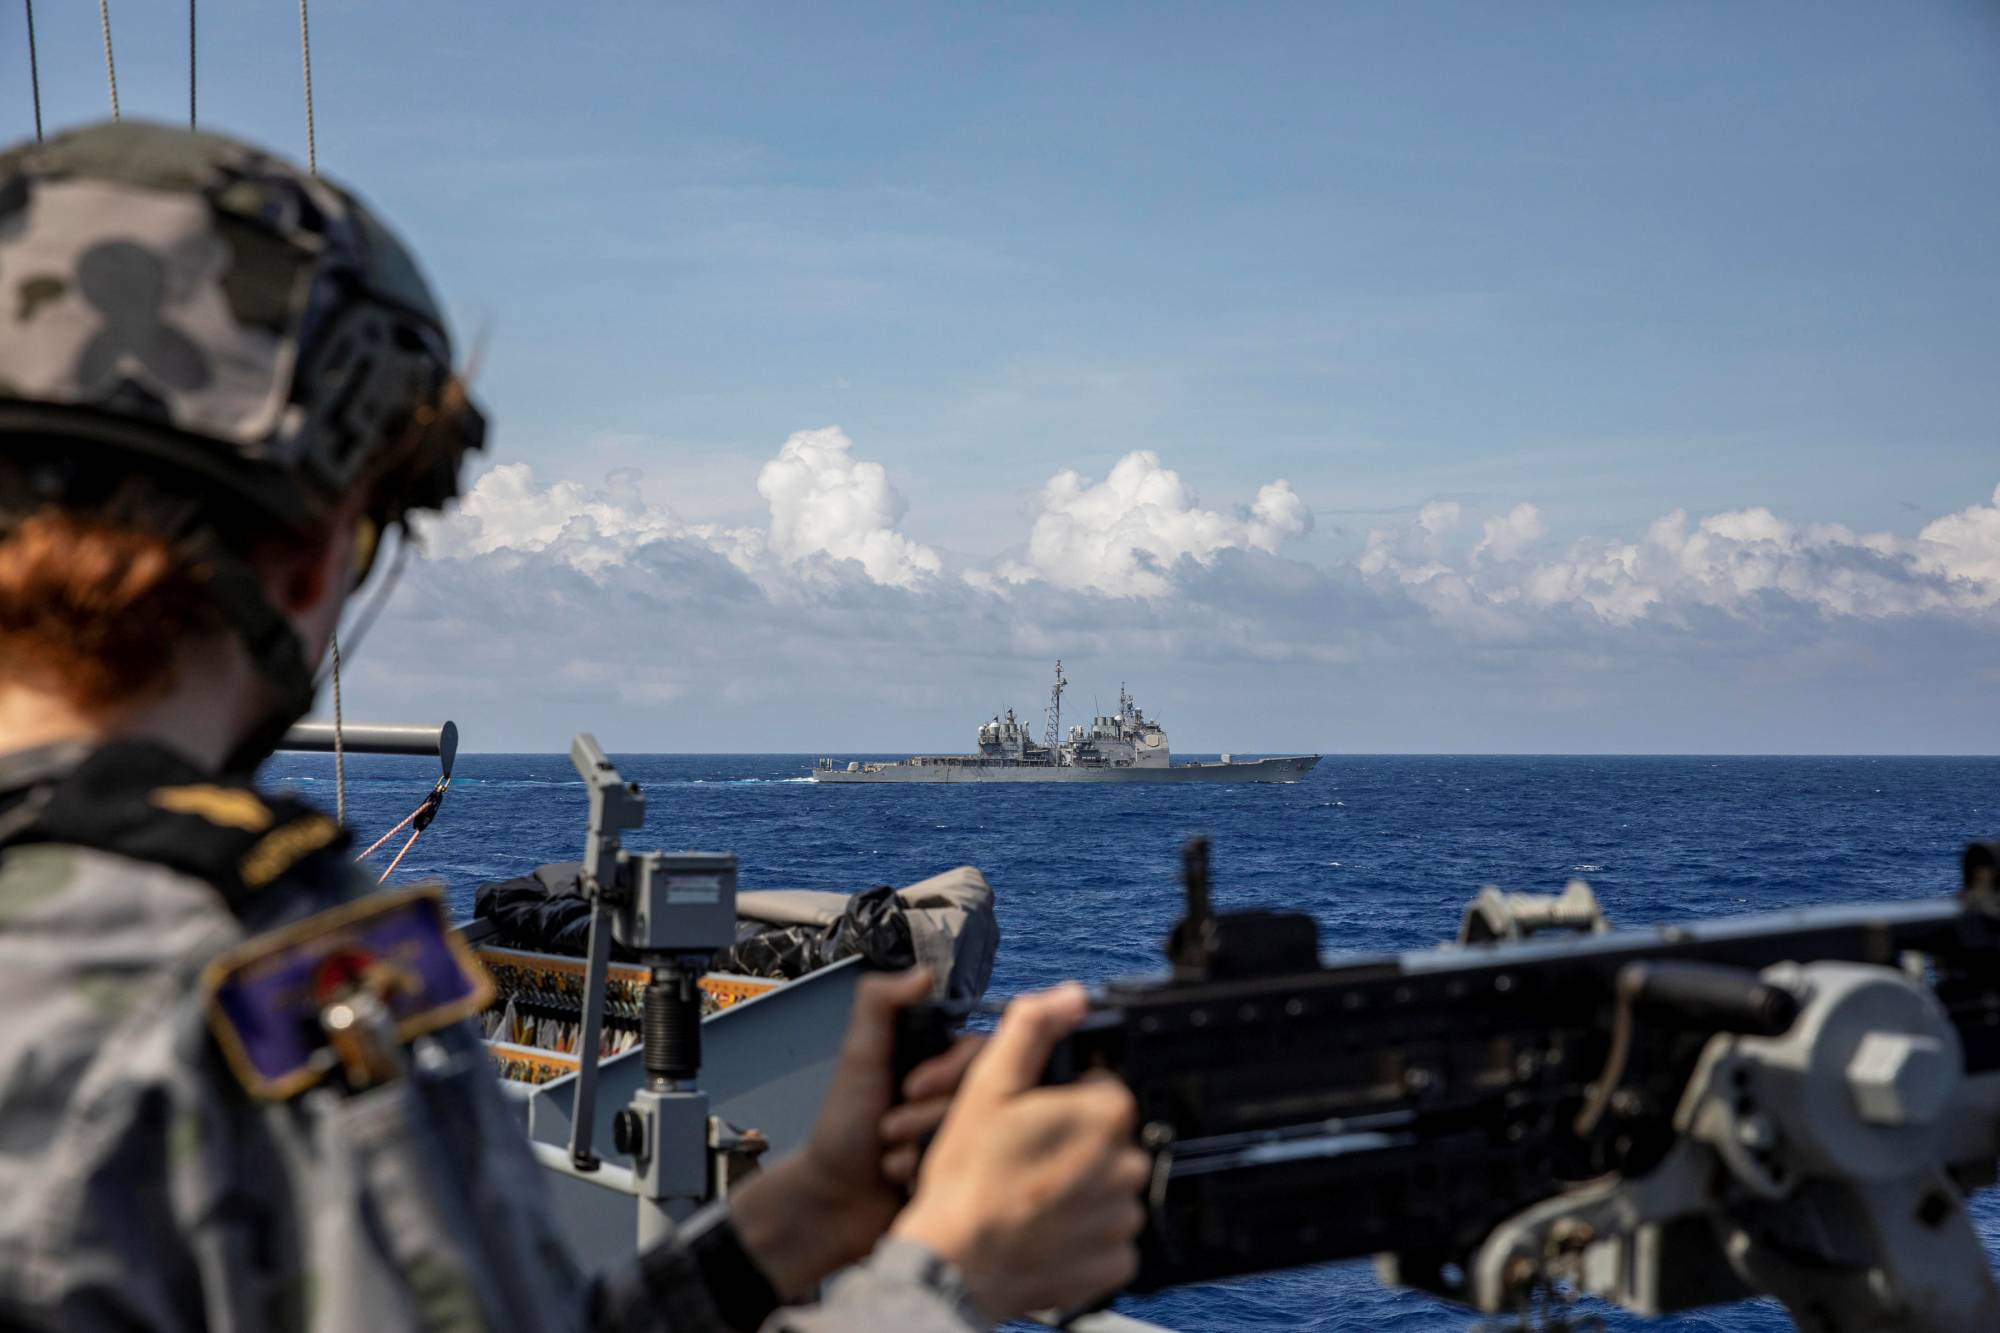 The USS Bunker Hill moves into position to conduct a joint training firing serial with HMAS Parramatta during a recent transit of the South China Sea. | AUSTRALIA DEPARTMENT OF DEFENCE